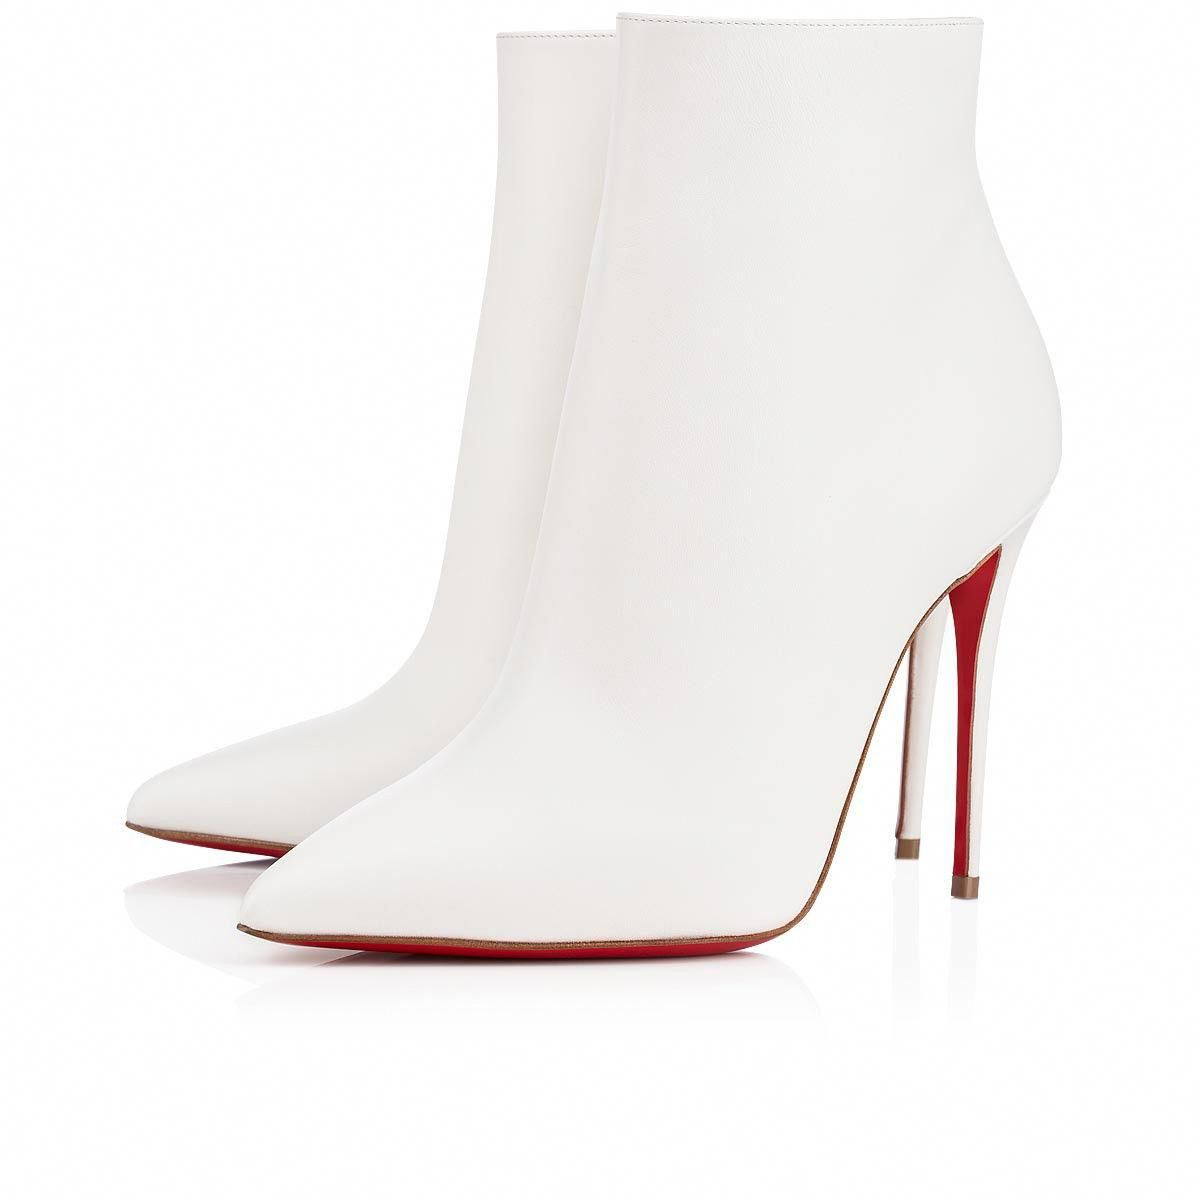 b7f750553640 Christian Louboutin United States Official Online Boutique - So Kate Booty  100 Latte Leather available online